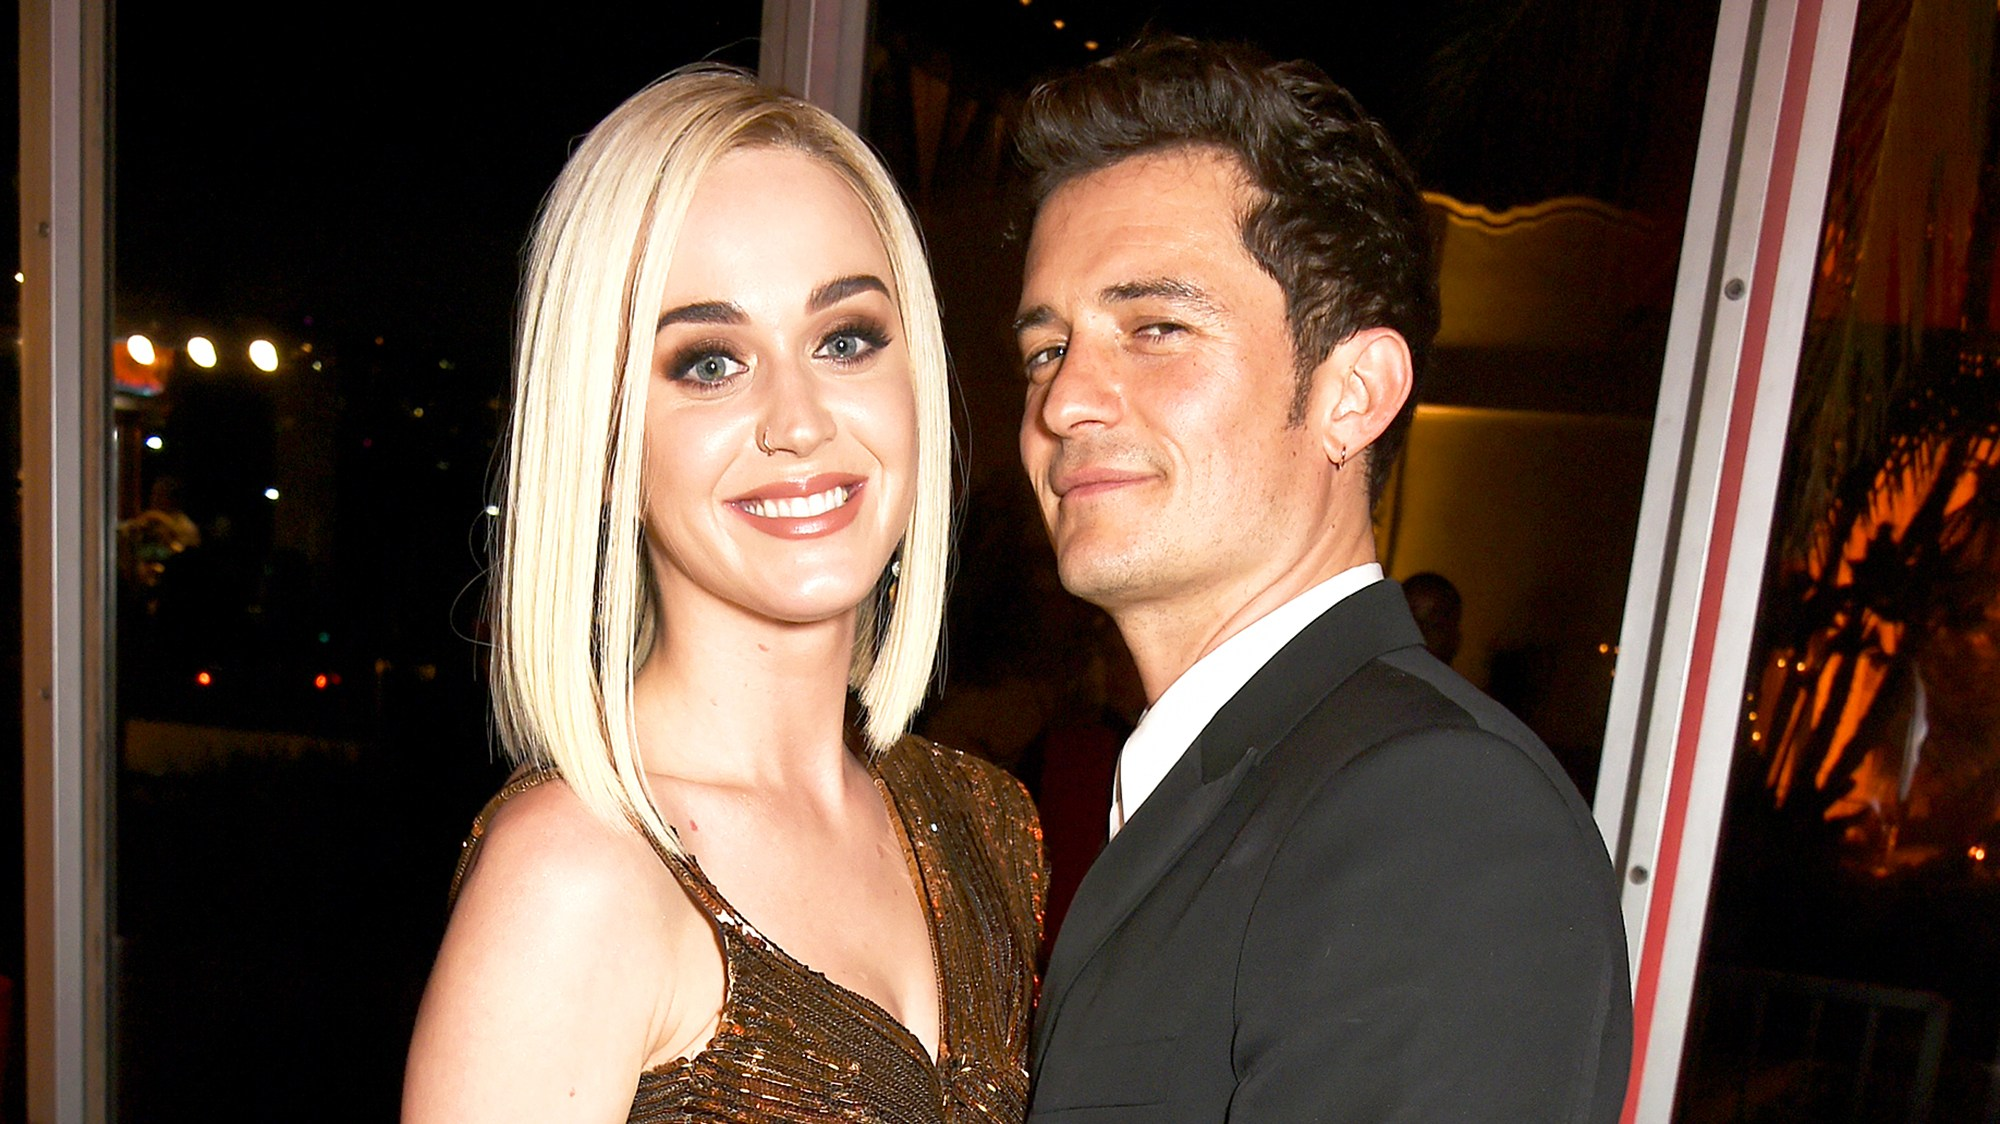 Katy Perry and Orlando Bloom attend the 2017 Vanity Fair Oscar Party in 2017.